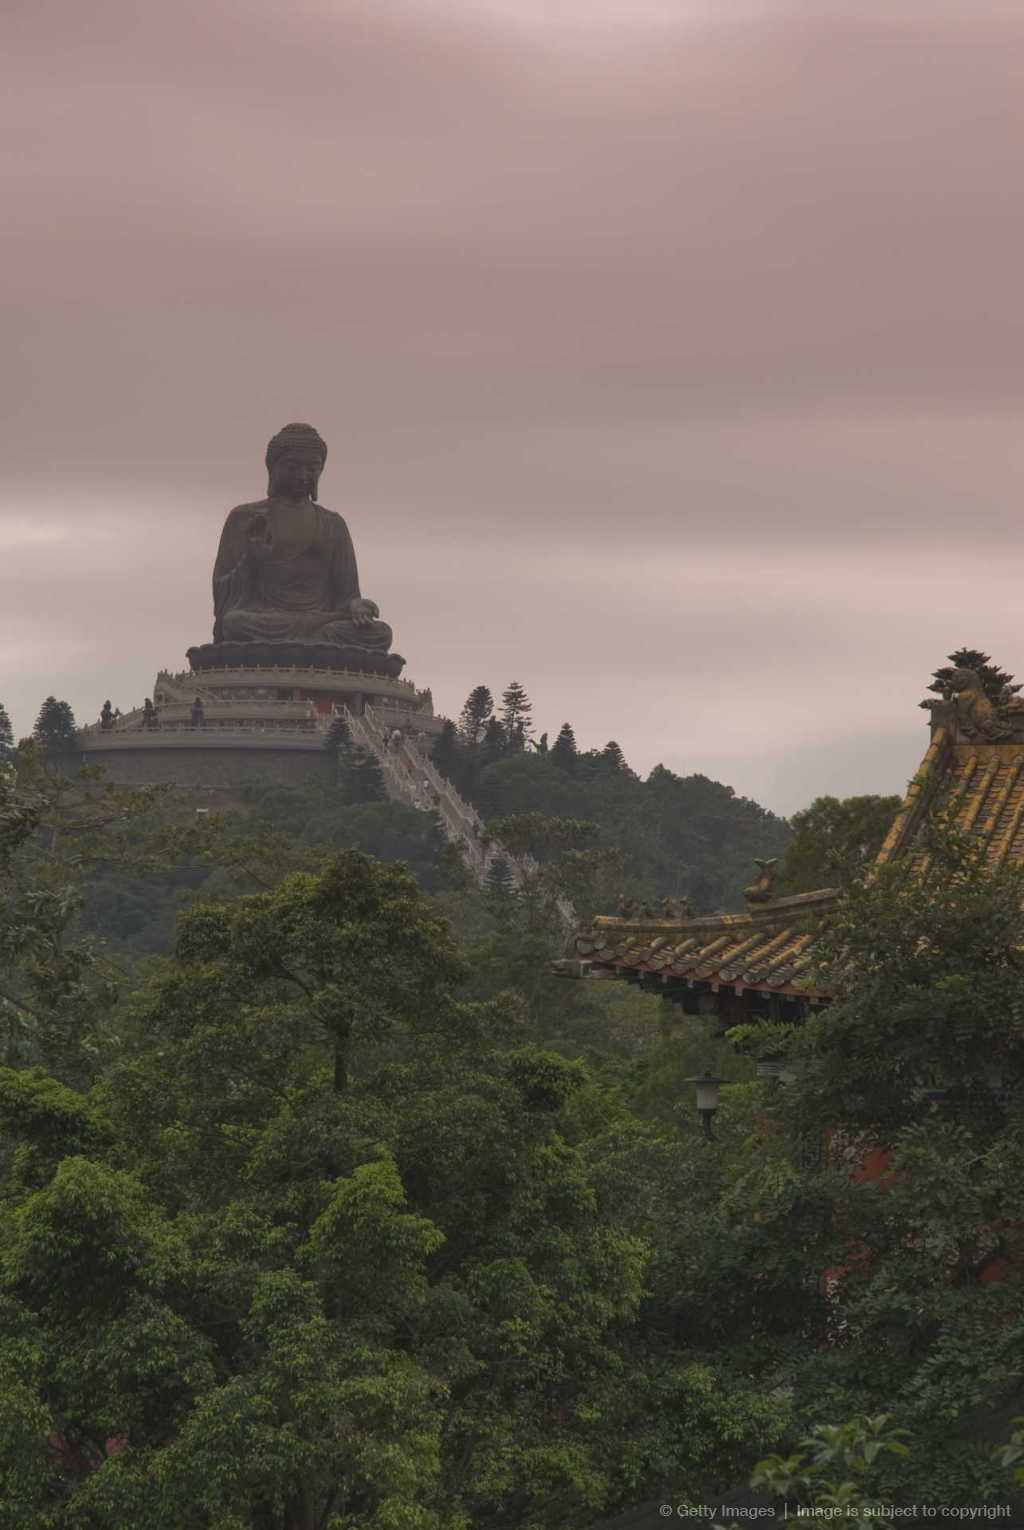 The Big Buddha statue, Po Lin Monastery, Lantau Island, Hong Kong, China, Asia